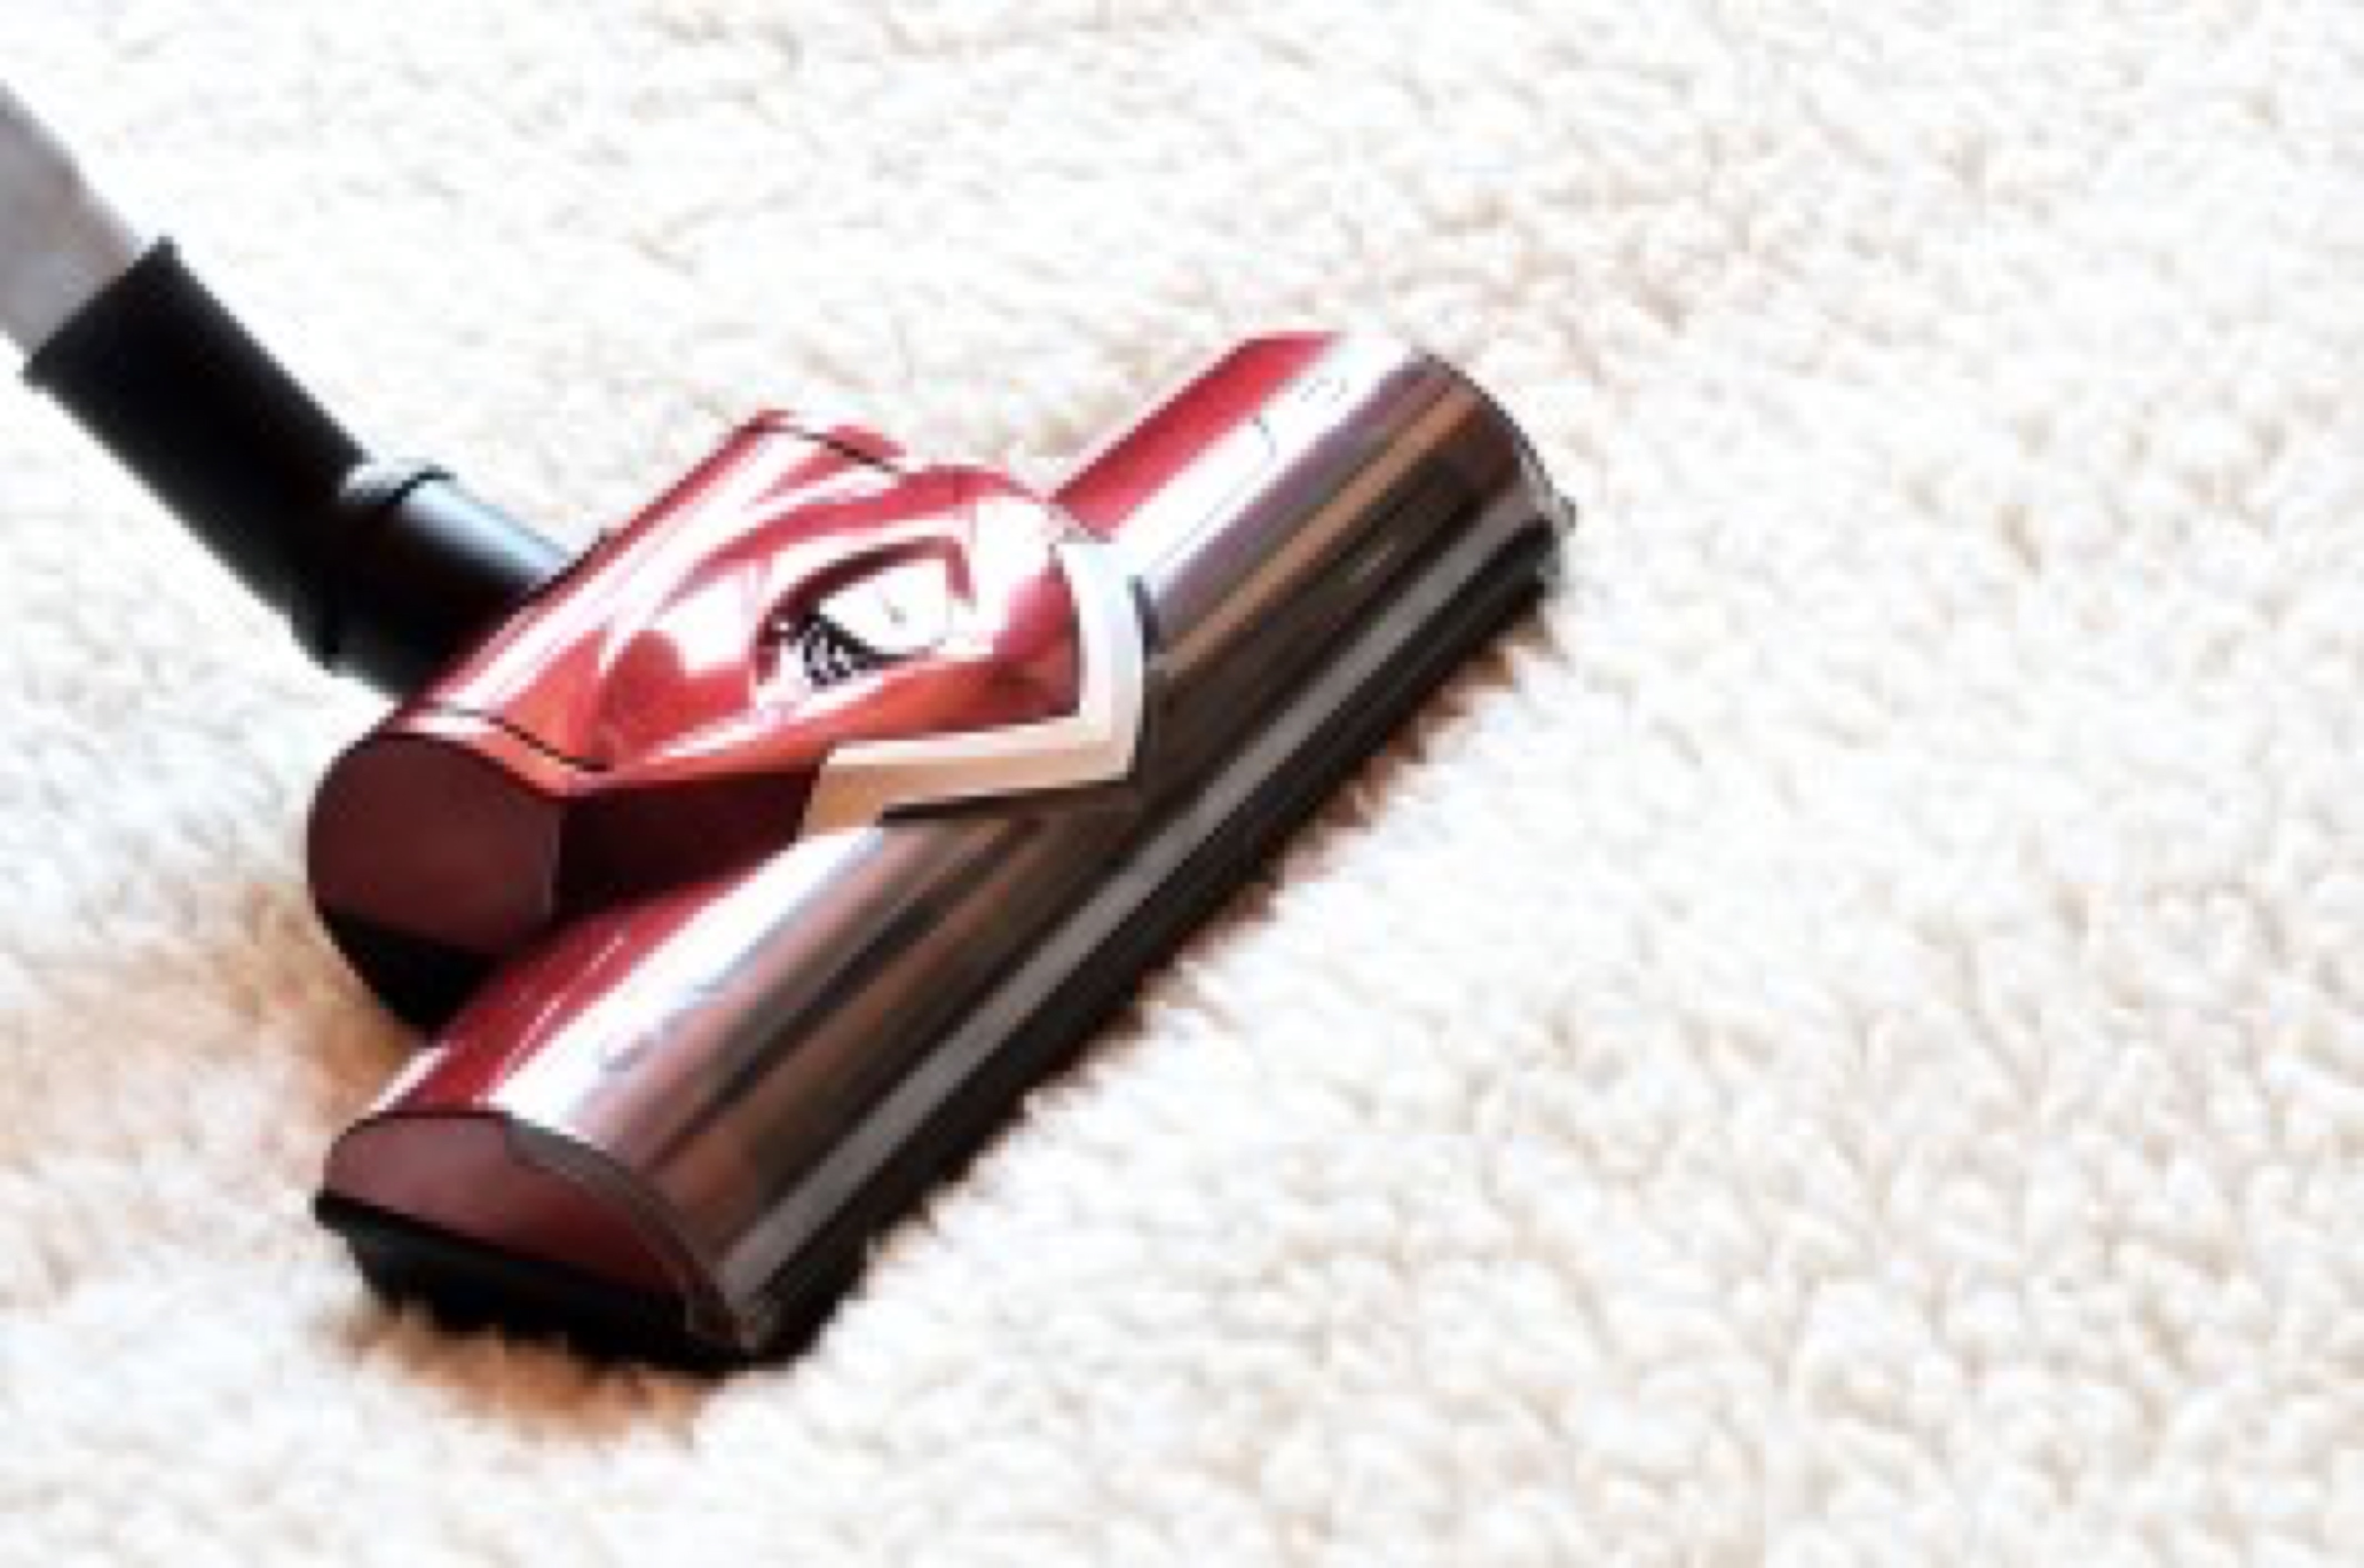 Vacuum cleaner. Close up of the head of a modern hoover being used while vacuuming a woollen furry carpet.